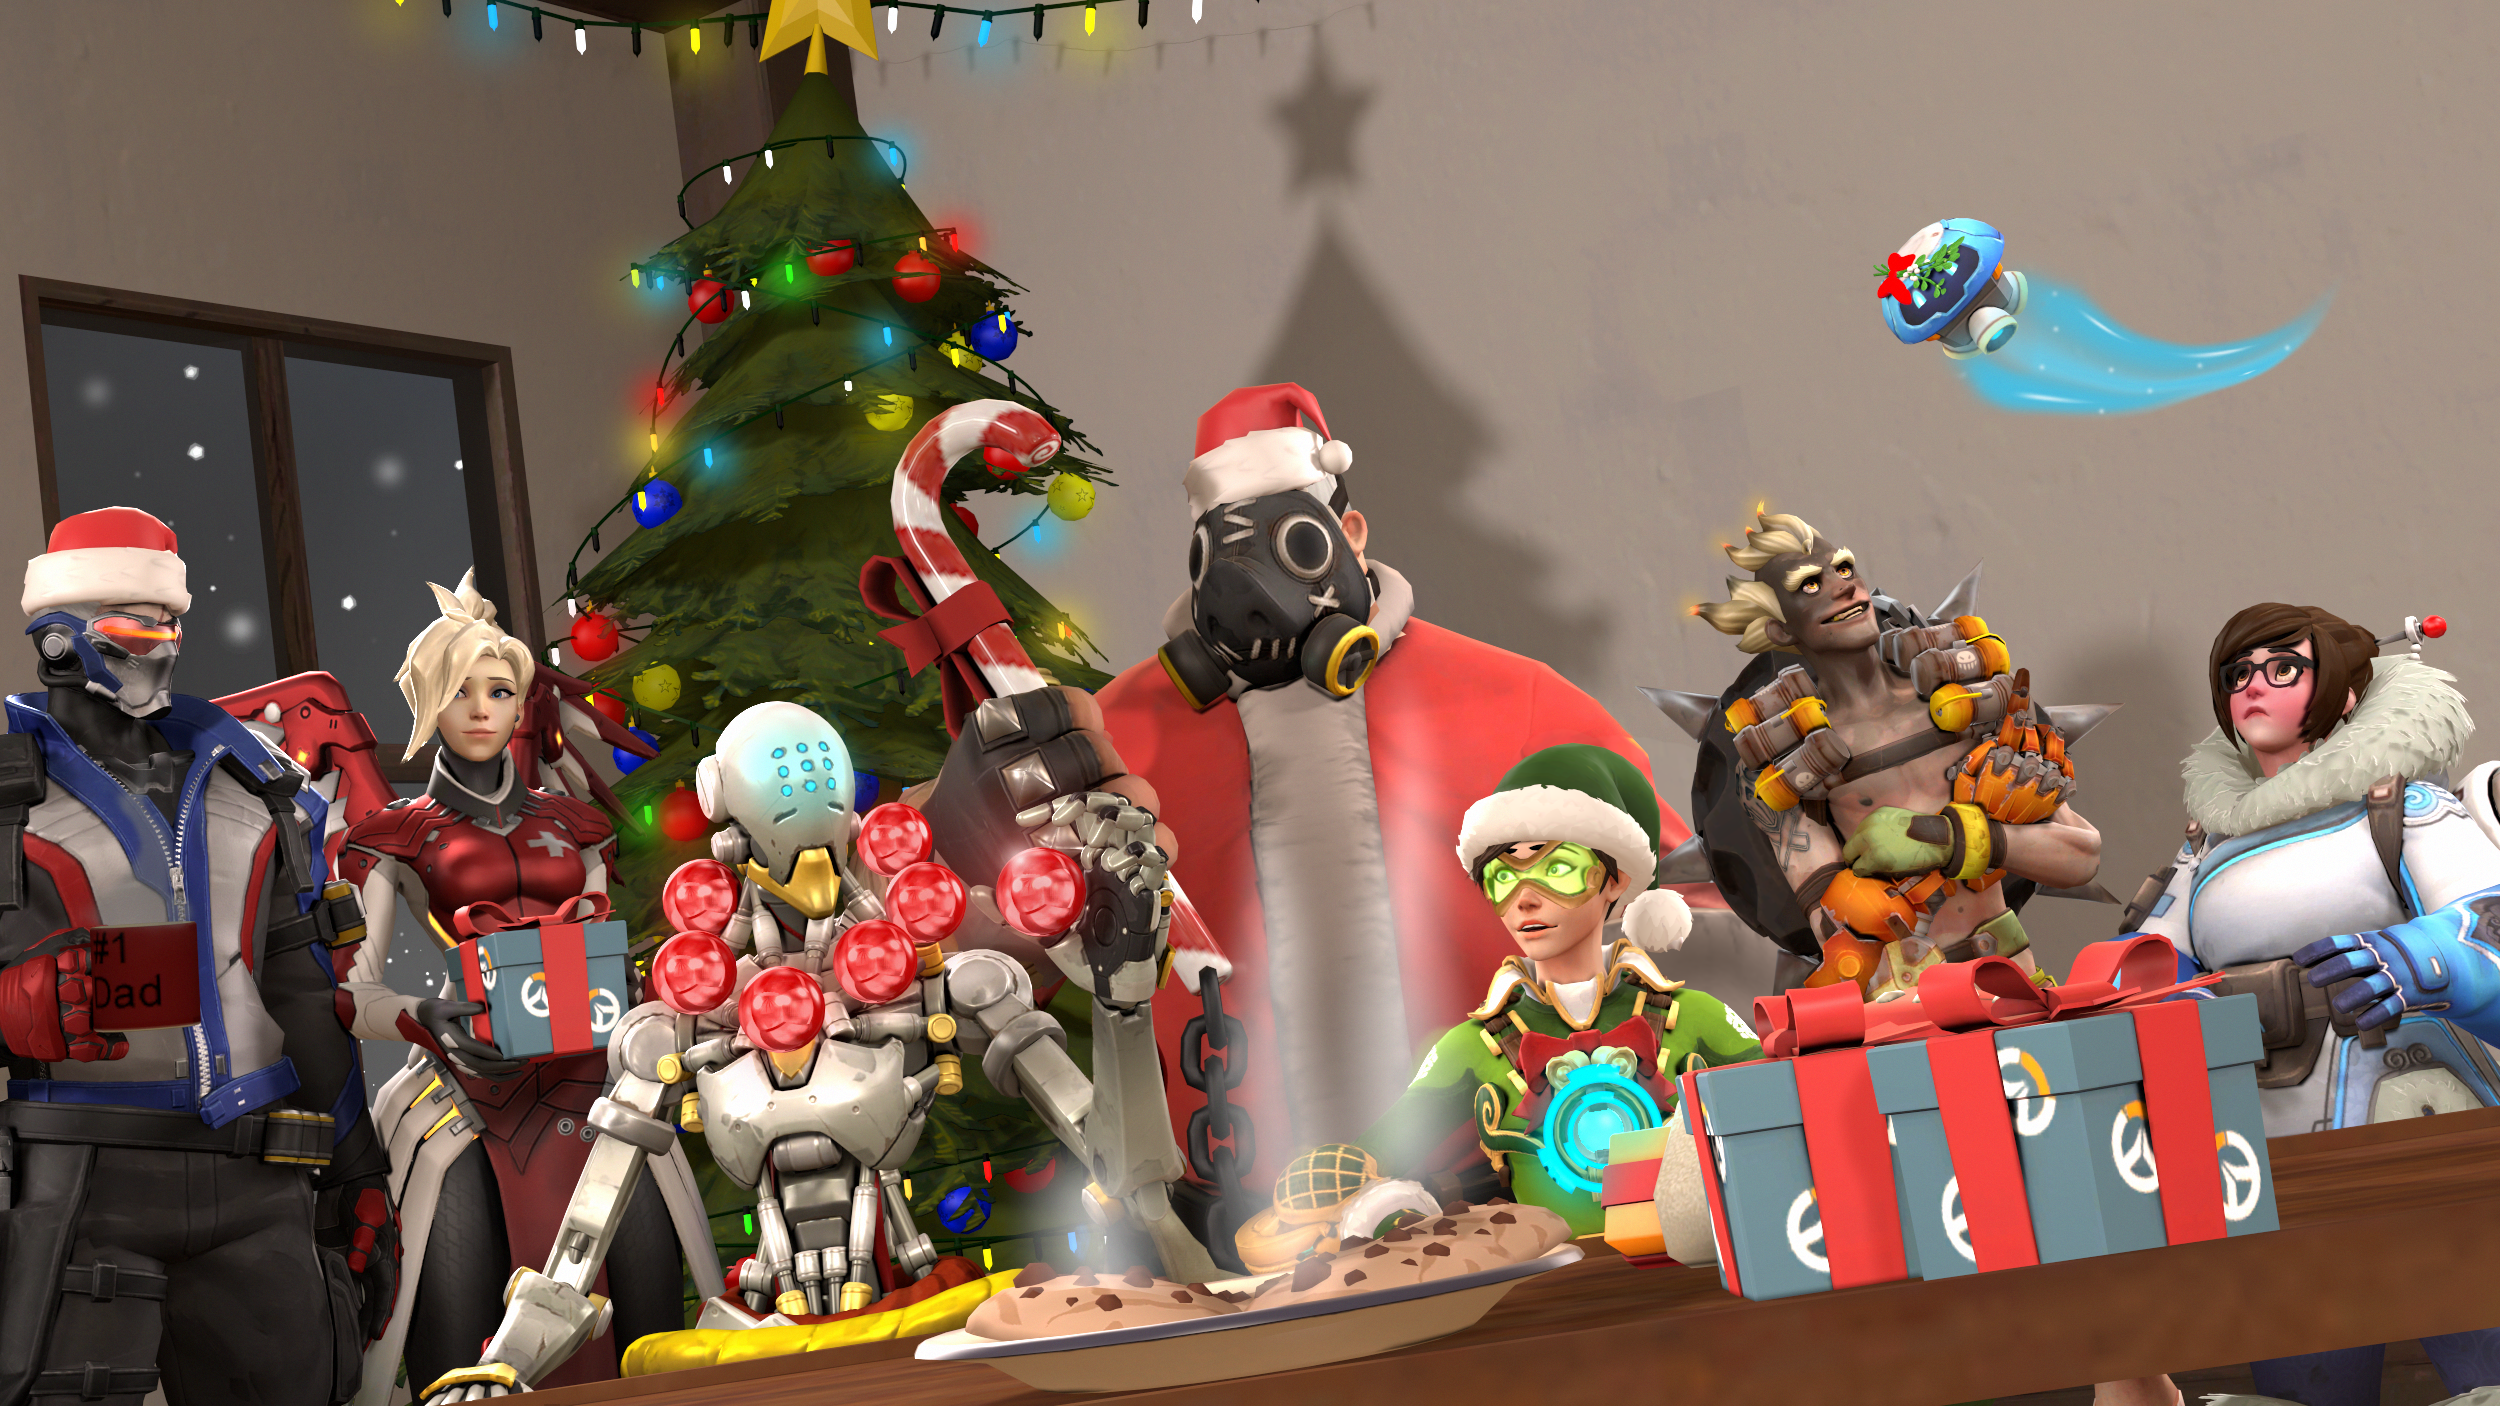 Merry christmas overwatch by darknessringogallery on - Overwatch christmas wallpaper ...